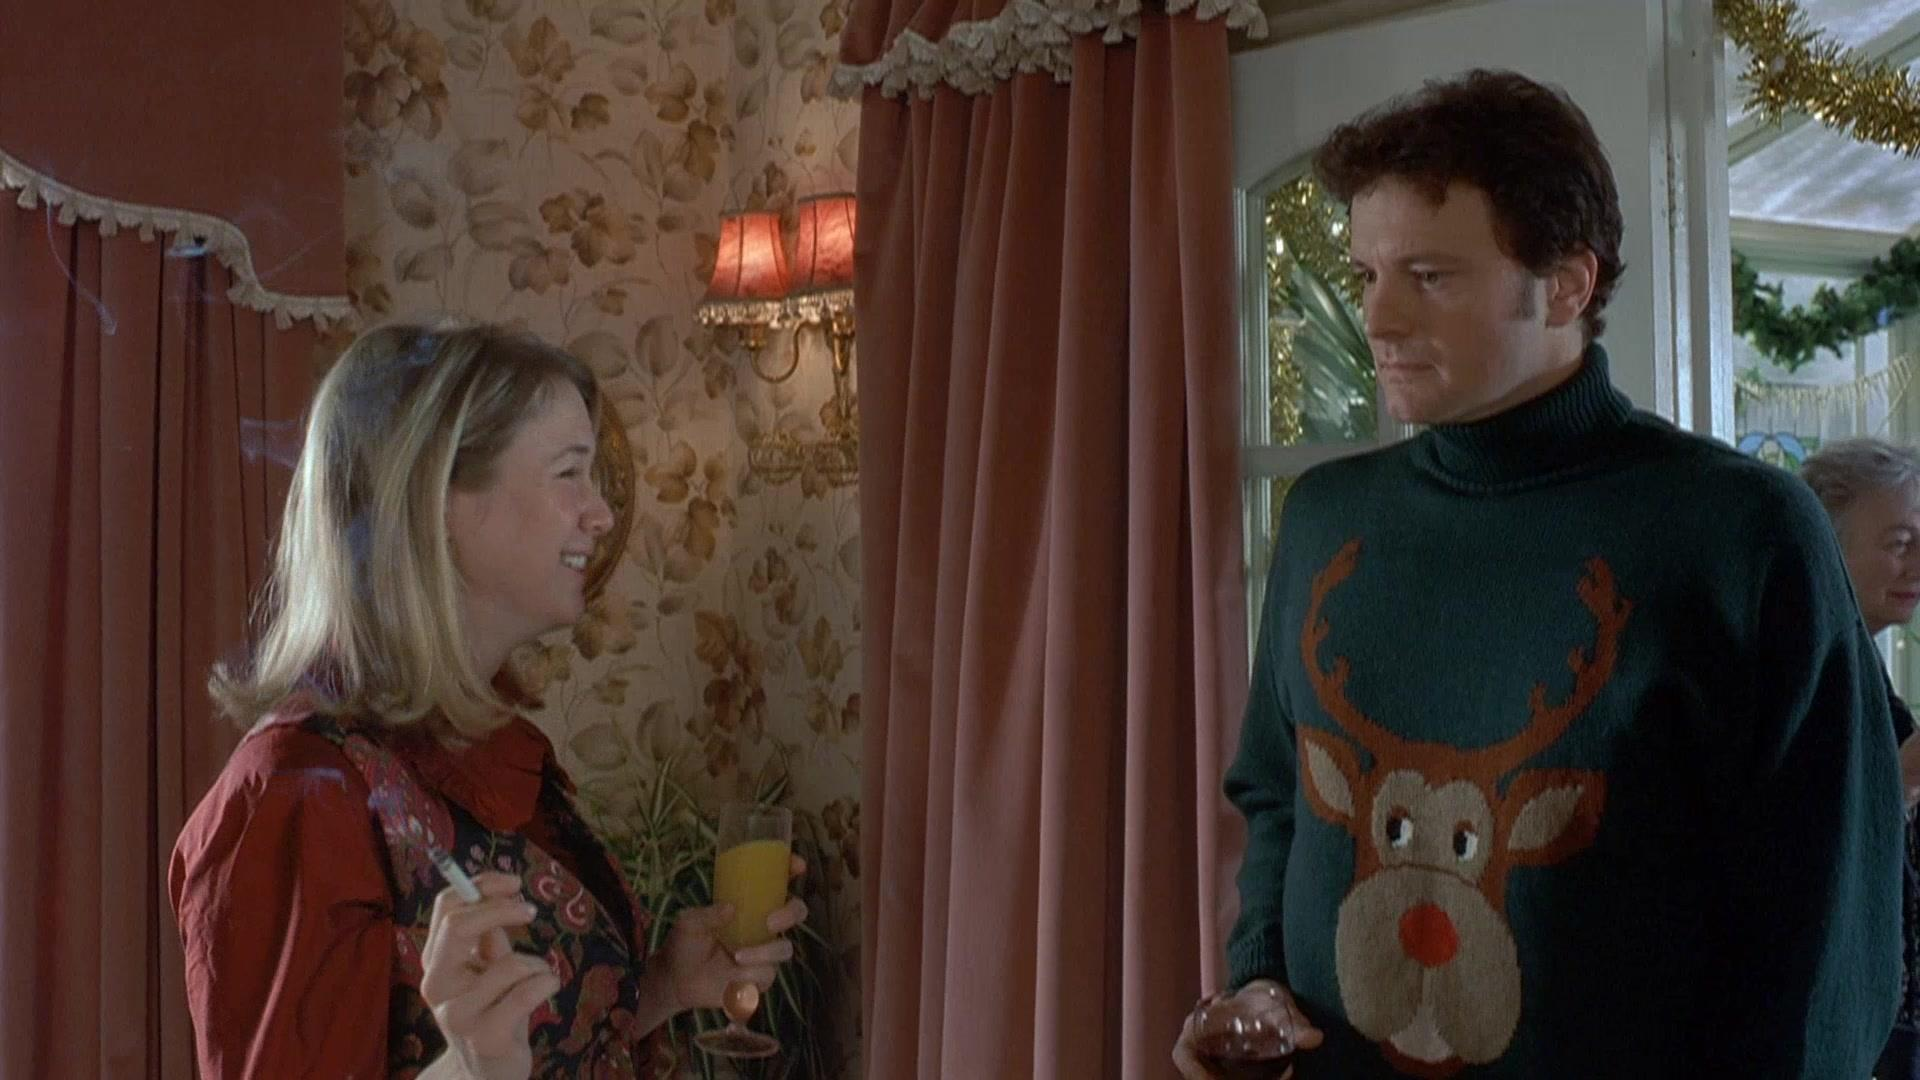 Bridget Jones's Diary - Ugly Sweater Party